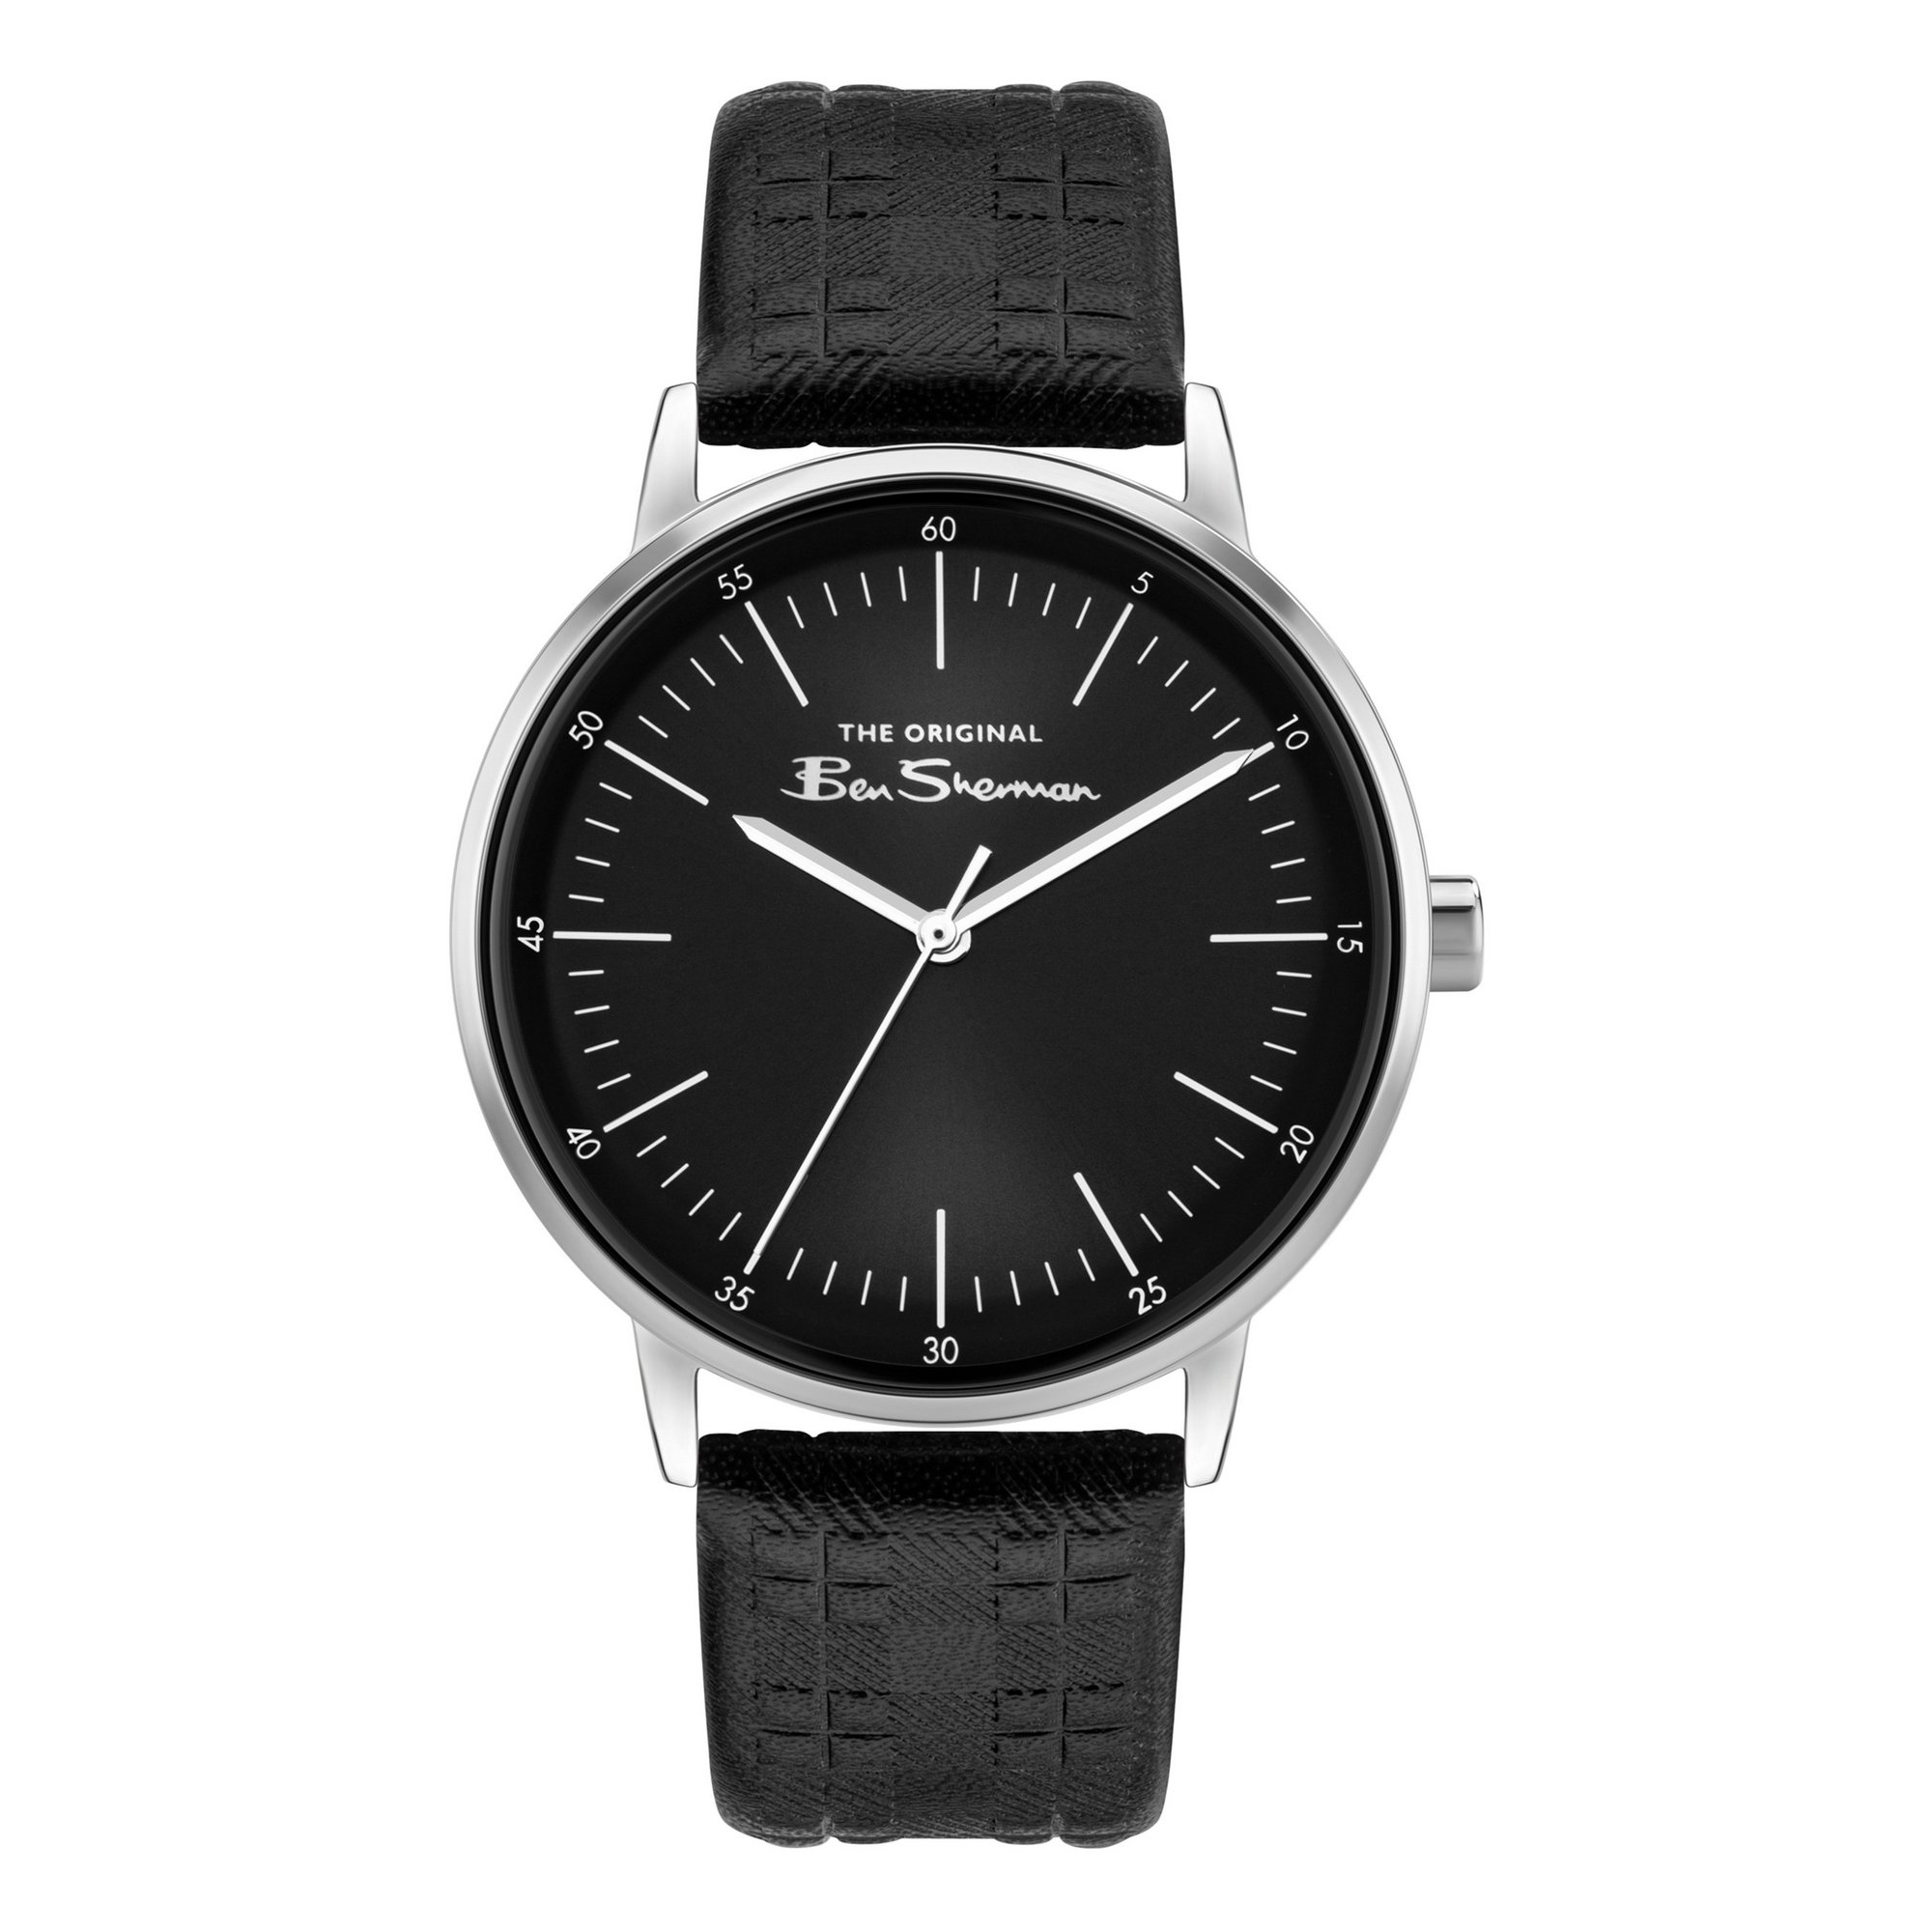 Image of Ben Sherman Watch with a Checked Strap and Black Dial